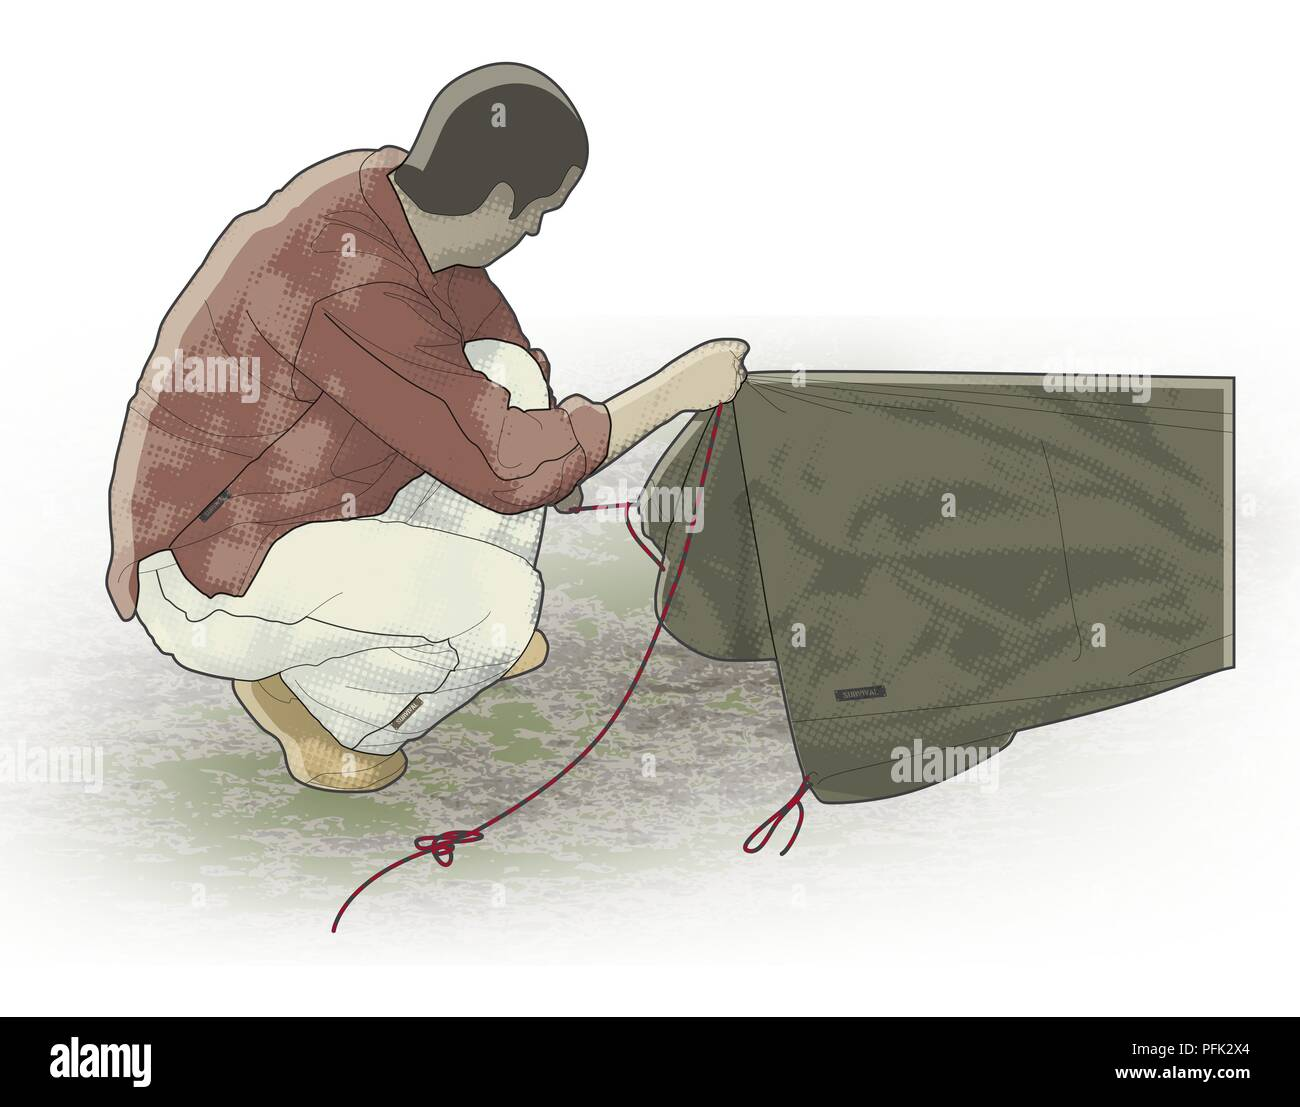 Digital illustration of man holding up rope tied to bivi pup tent - Stock Image